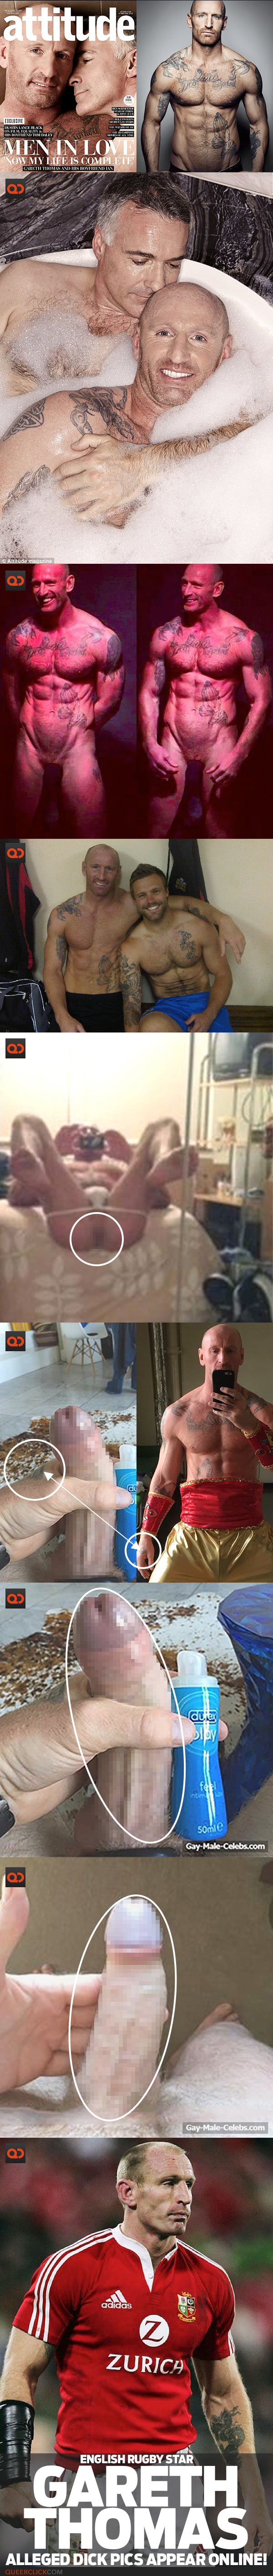 Gareth Thomas, English Rugby Star, Alleged Dick Pics Appear Online!